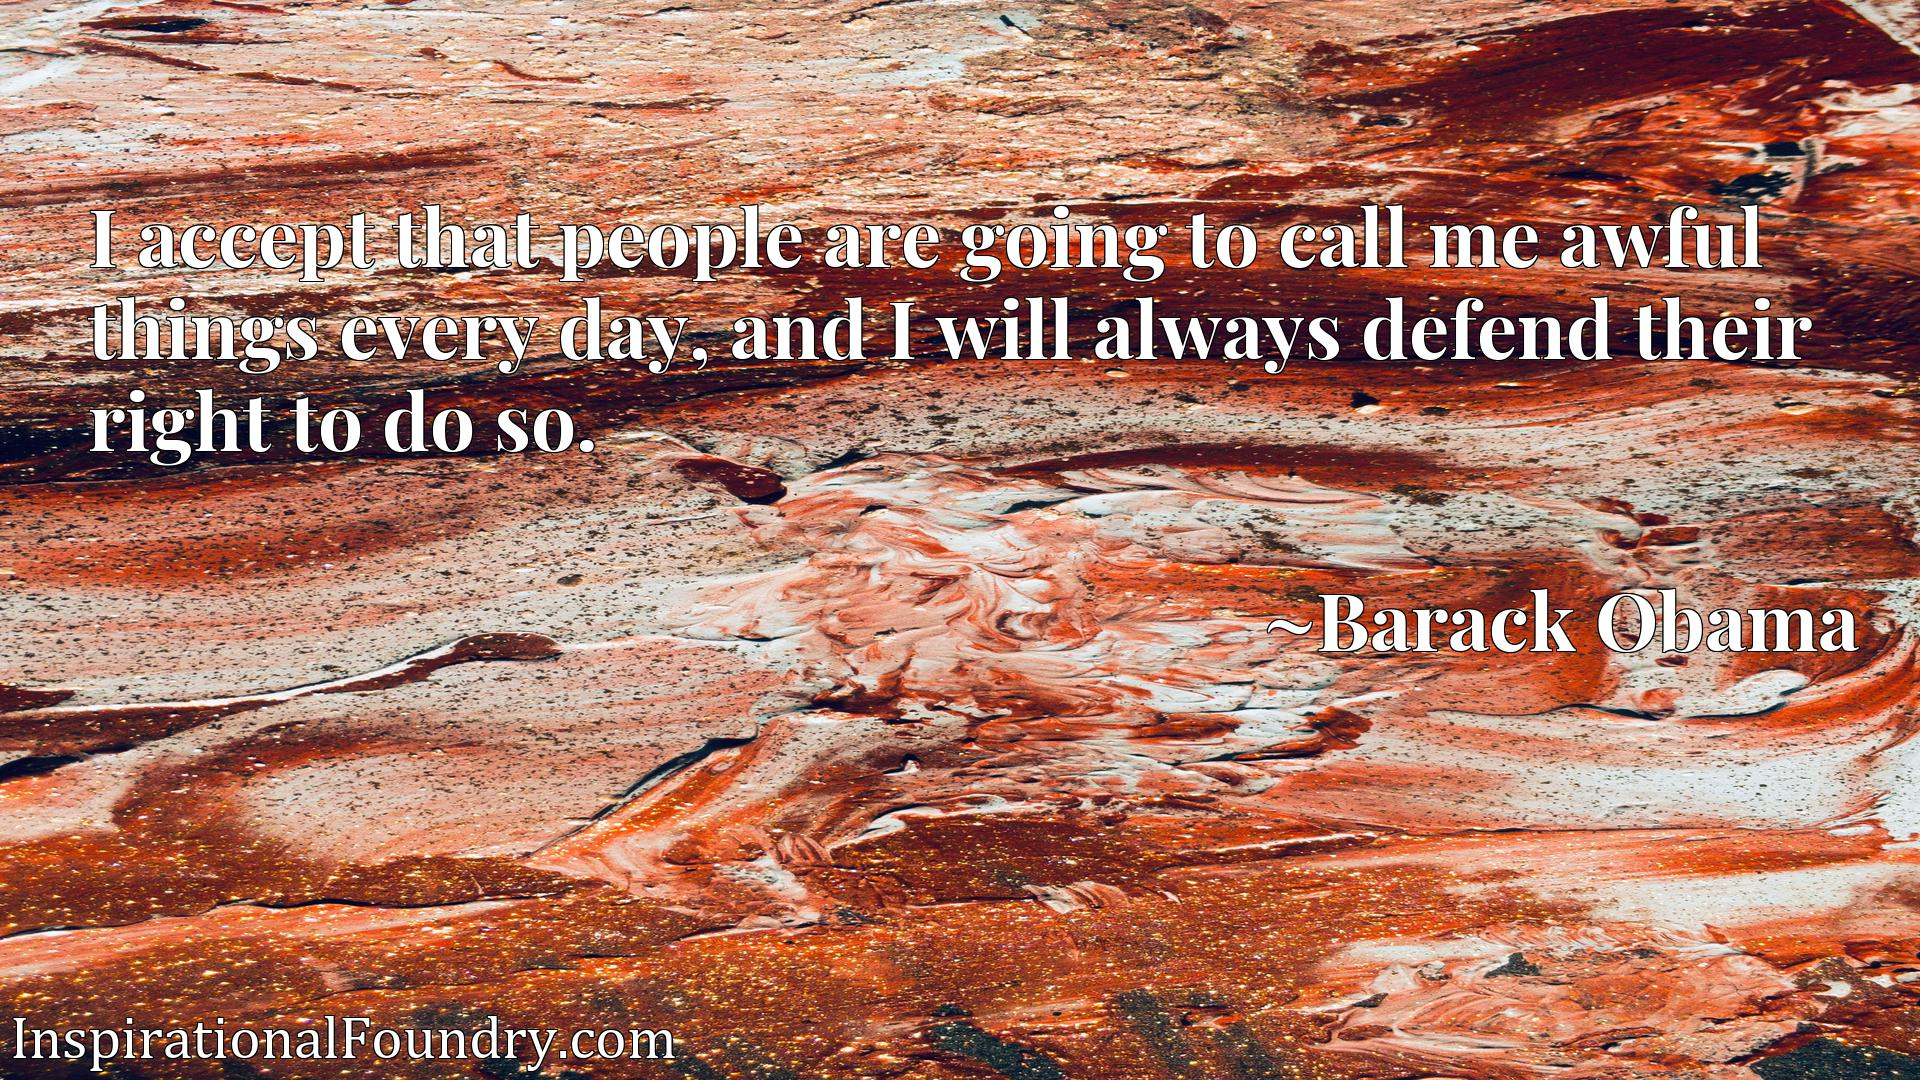 I accept that people are going to call me awful things every day, and I will always defend their right to do so.